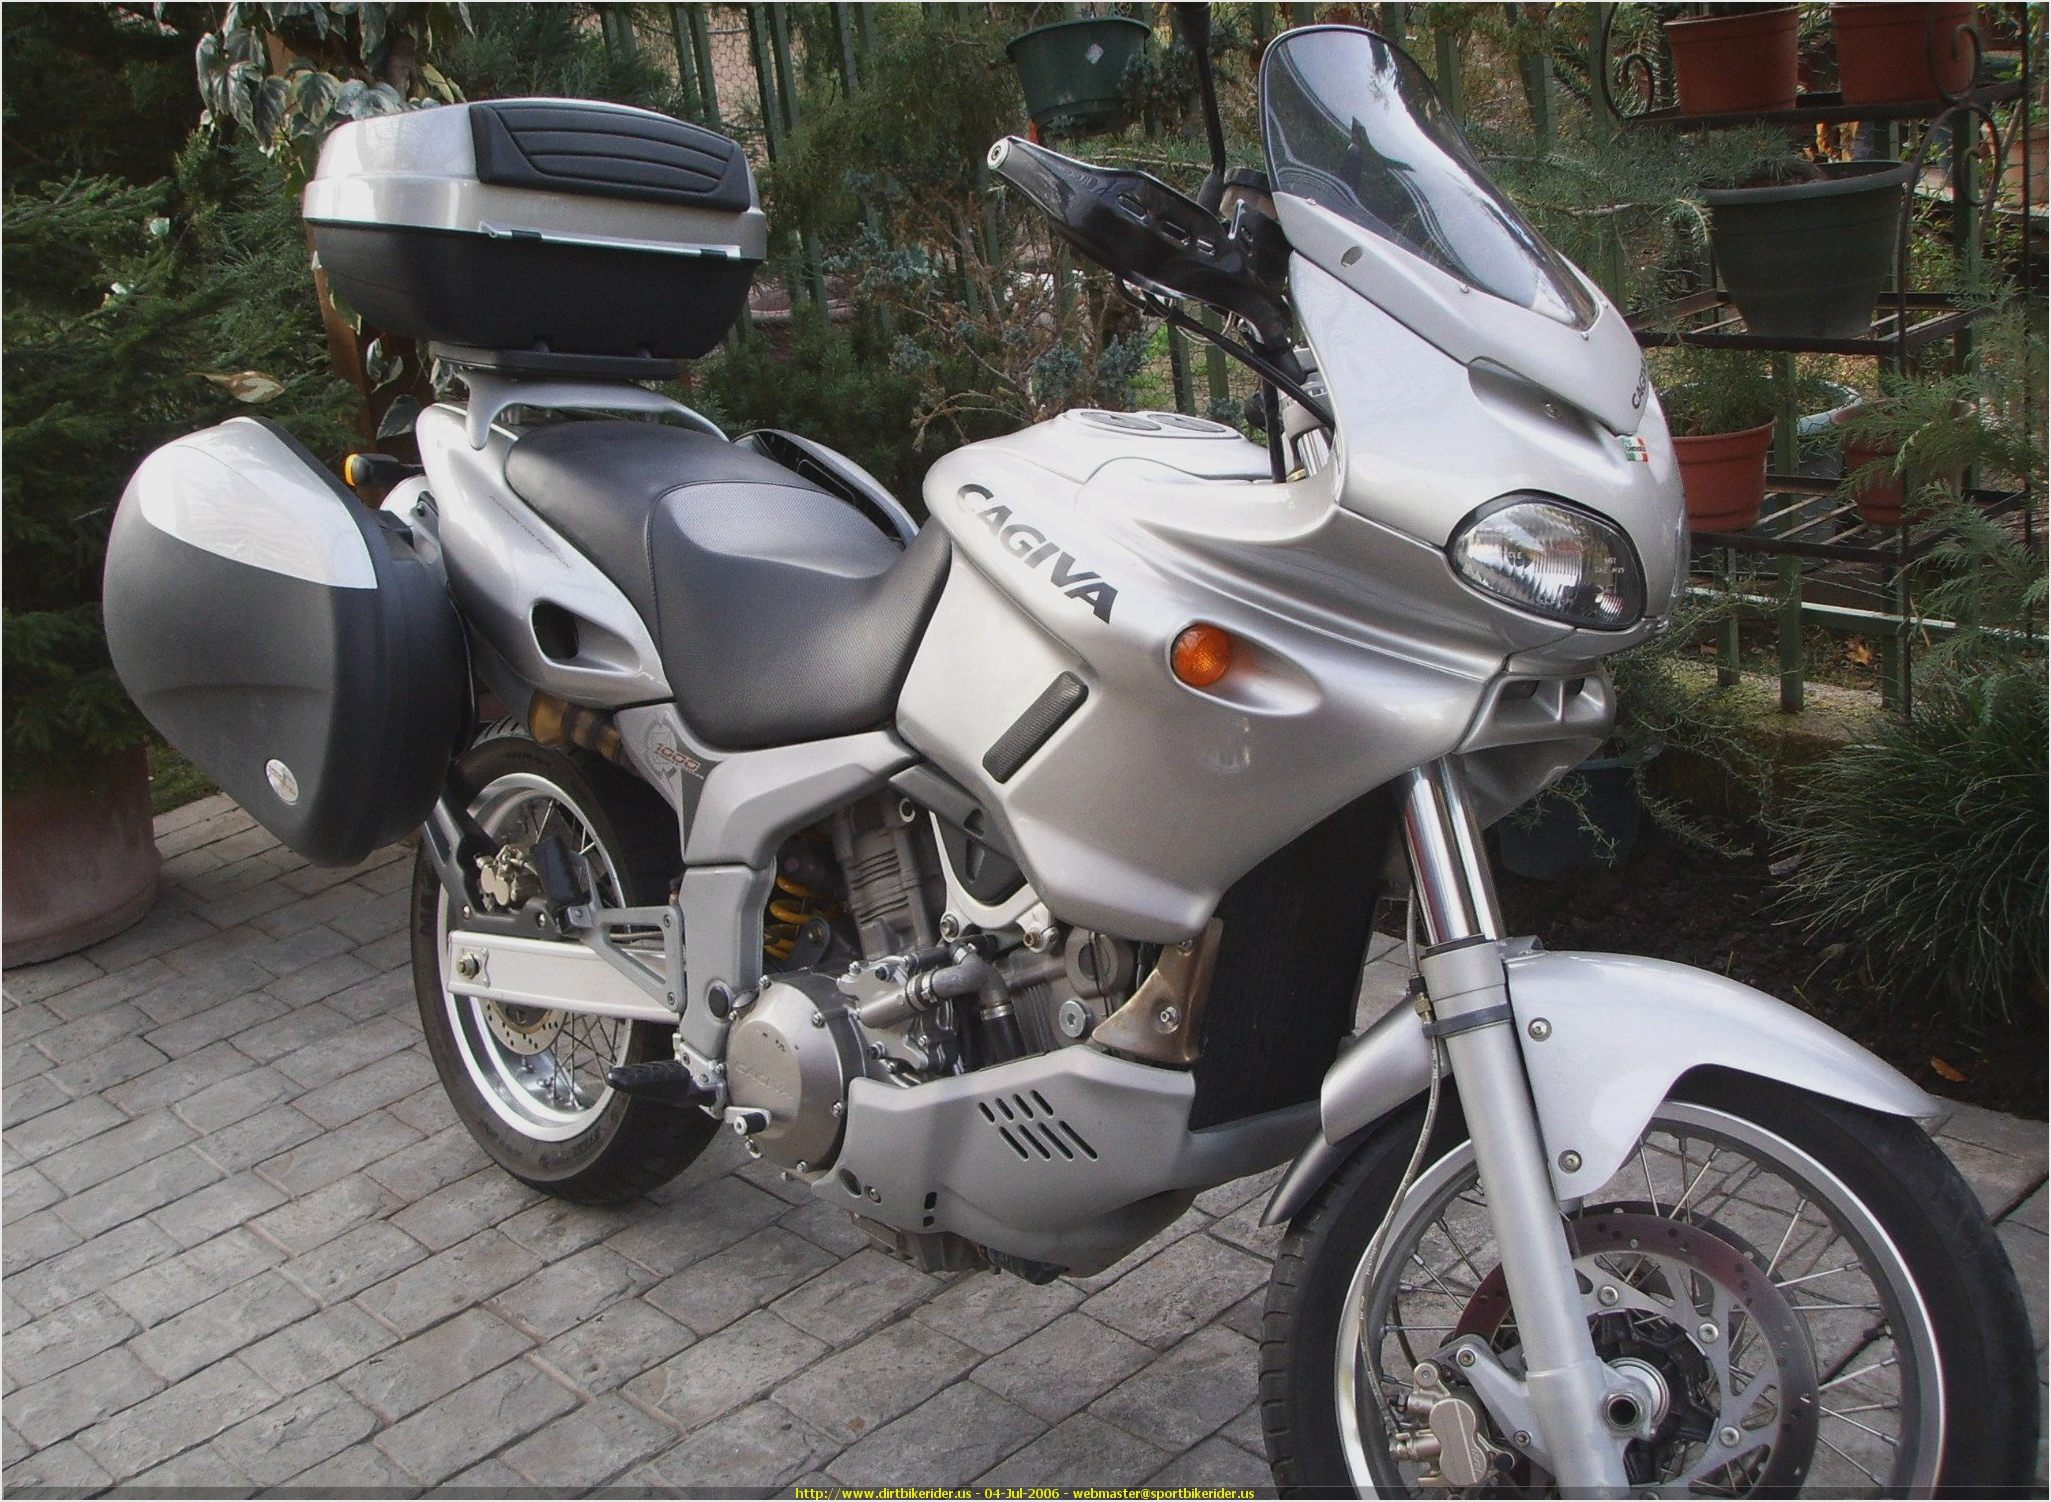 Cagiva Navigator 1000 2004 images #67971